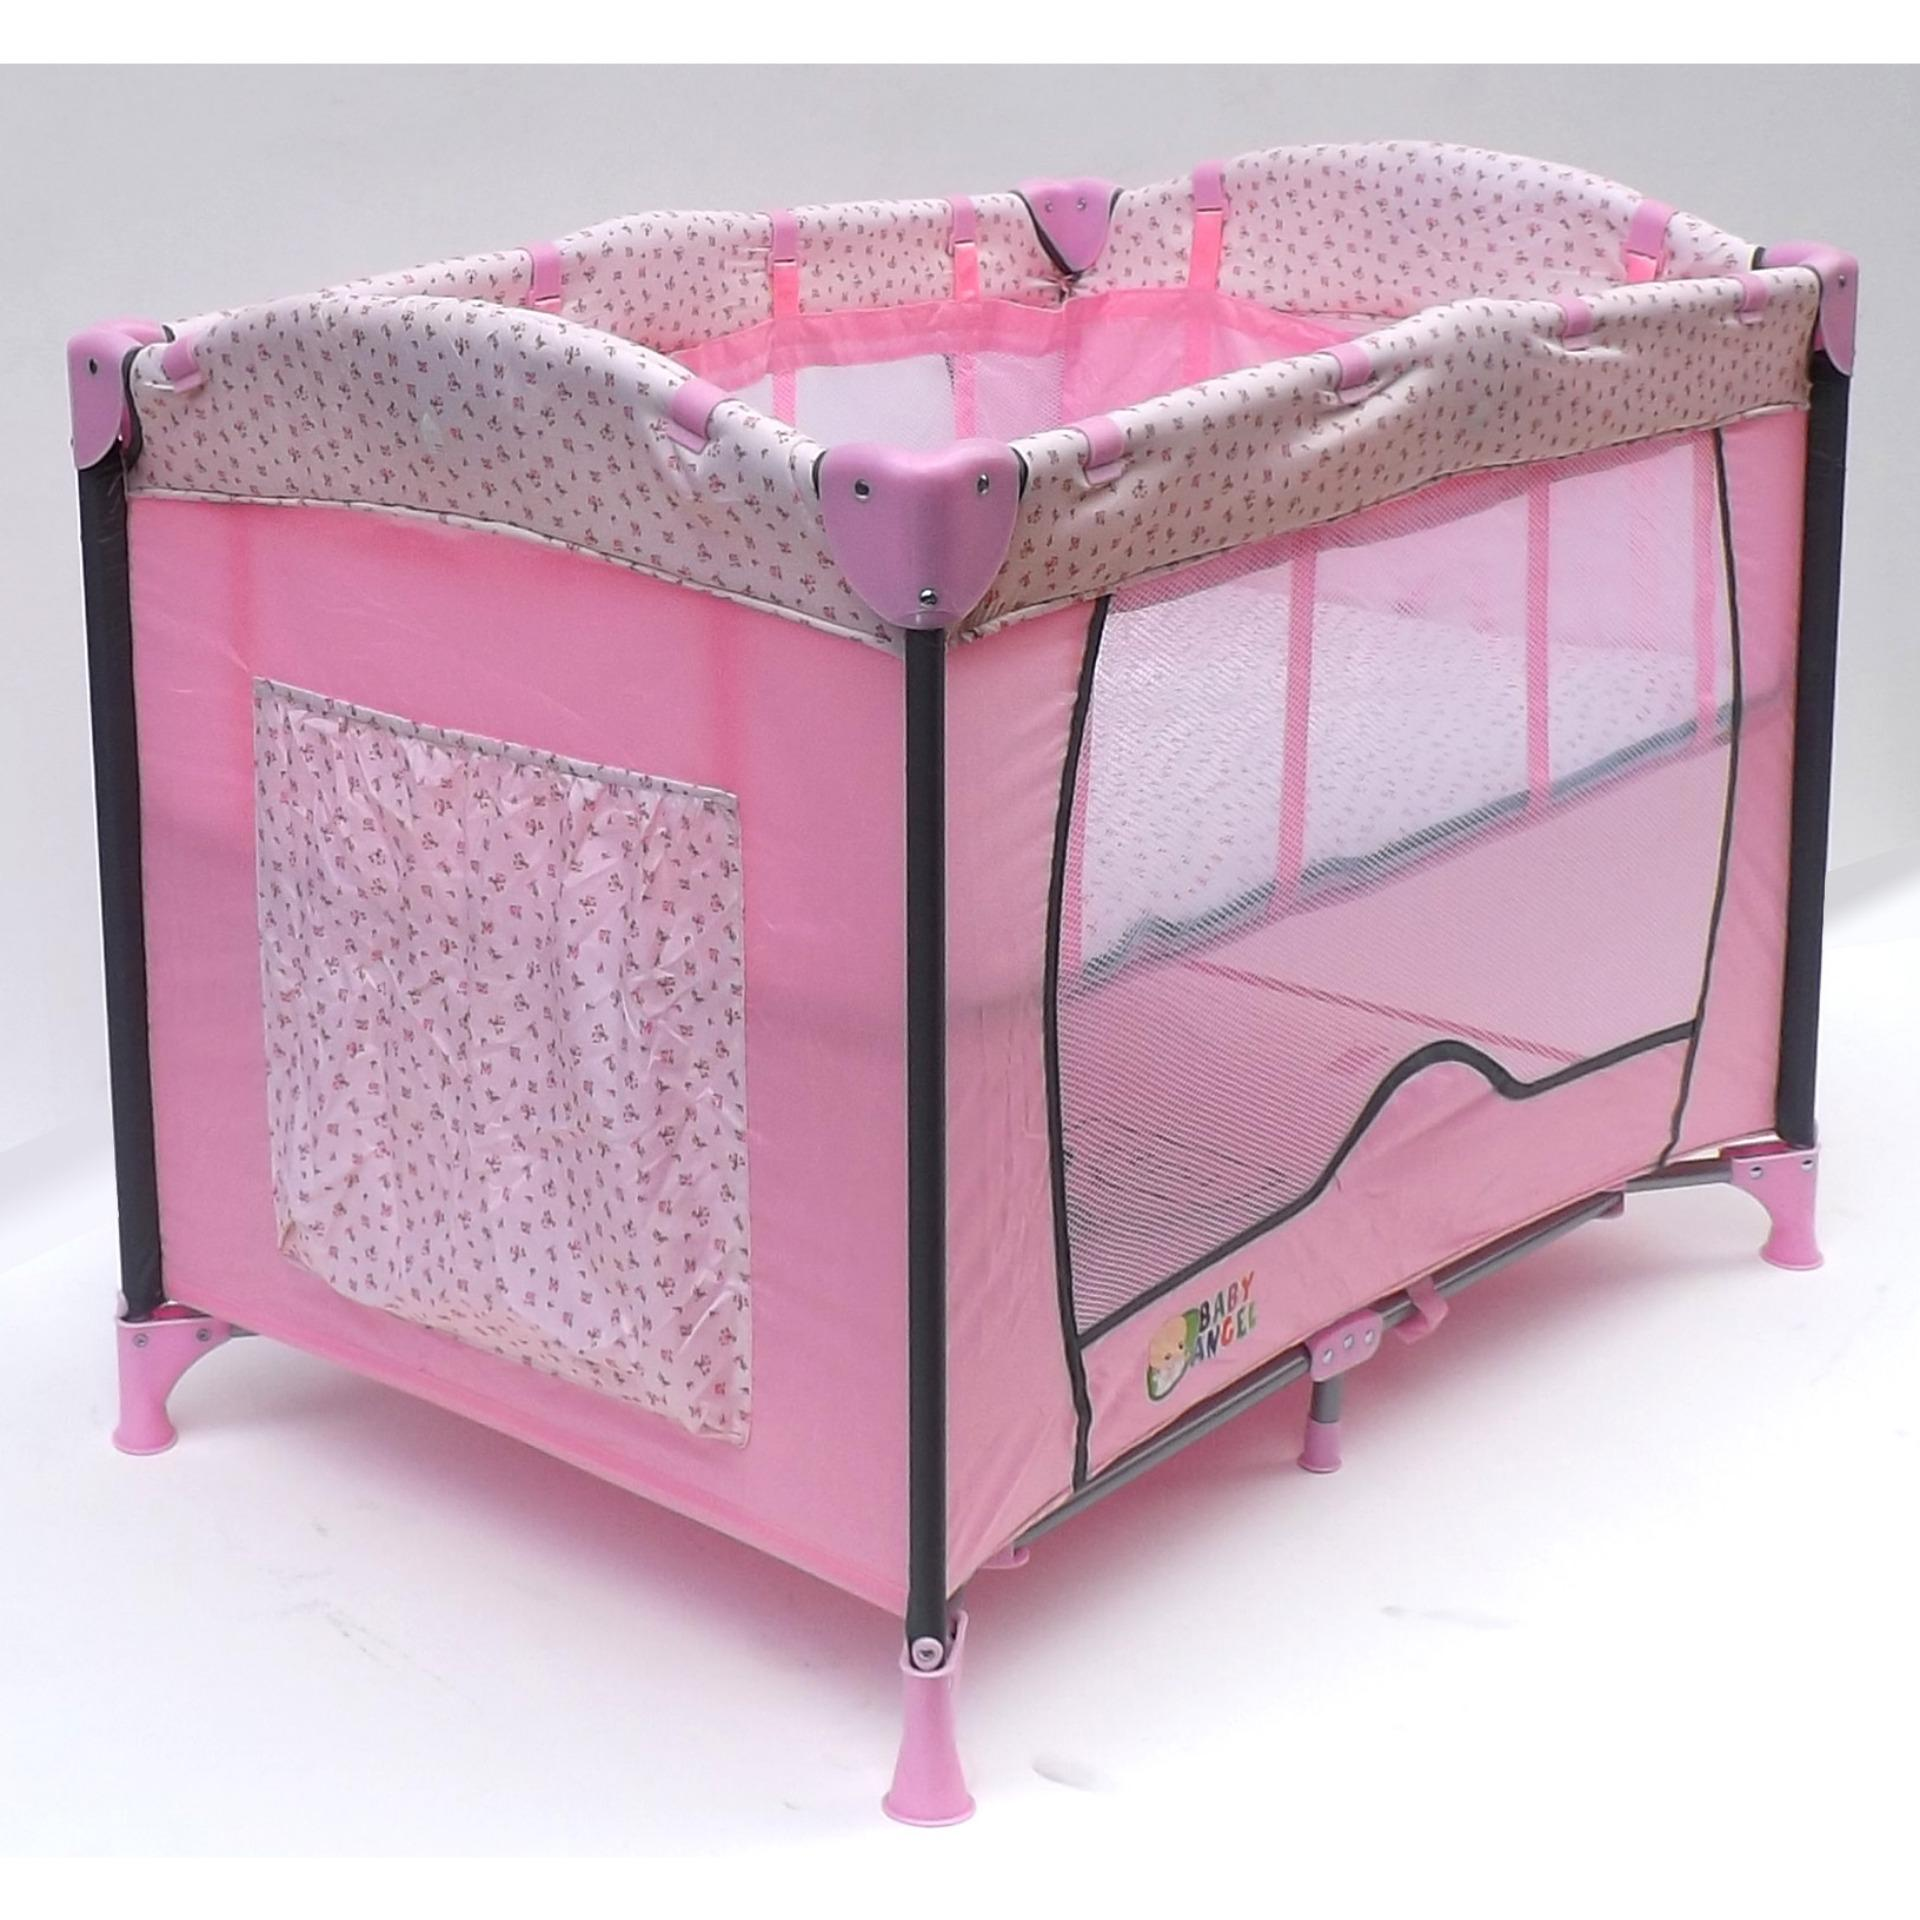 Graco Crib For Sale Manila - Baby cribs and cots for sale baby cots brands prices in philippines lazada